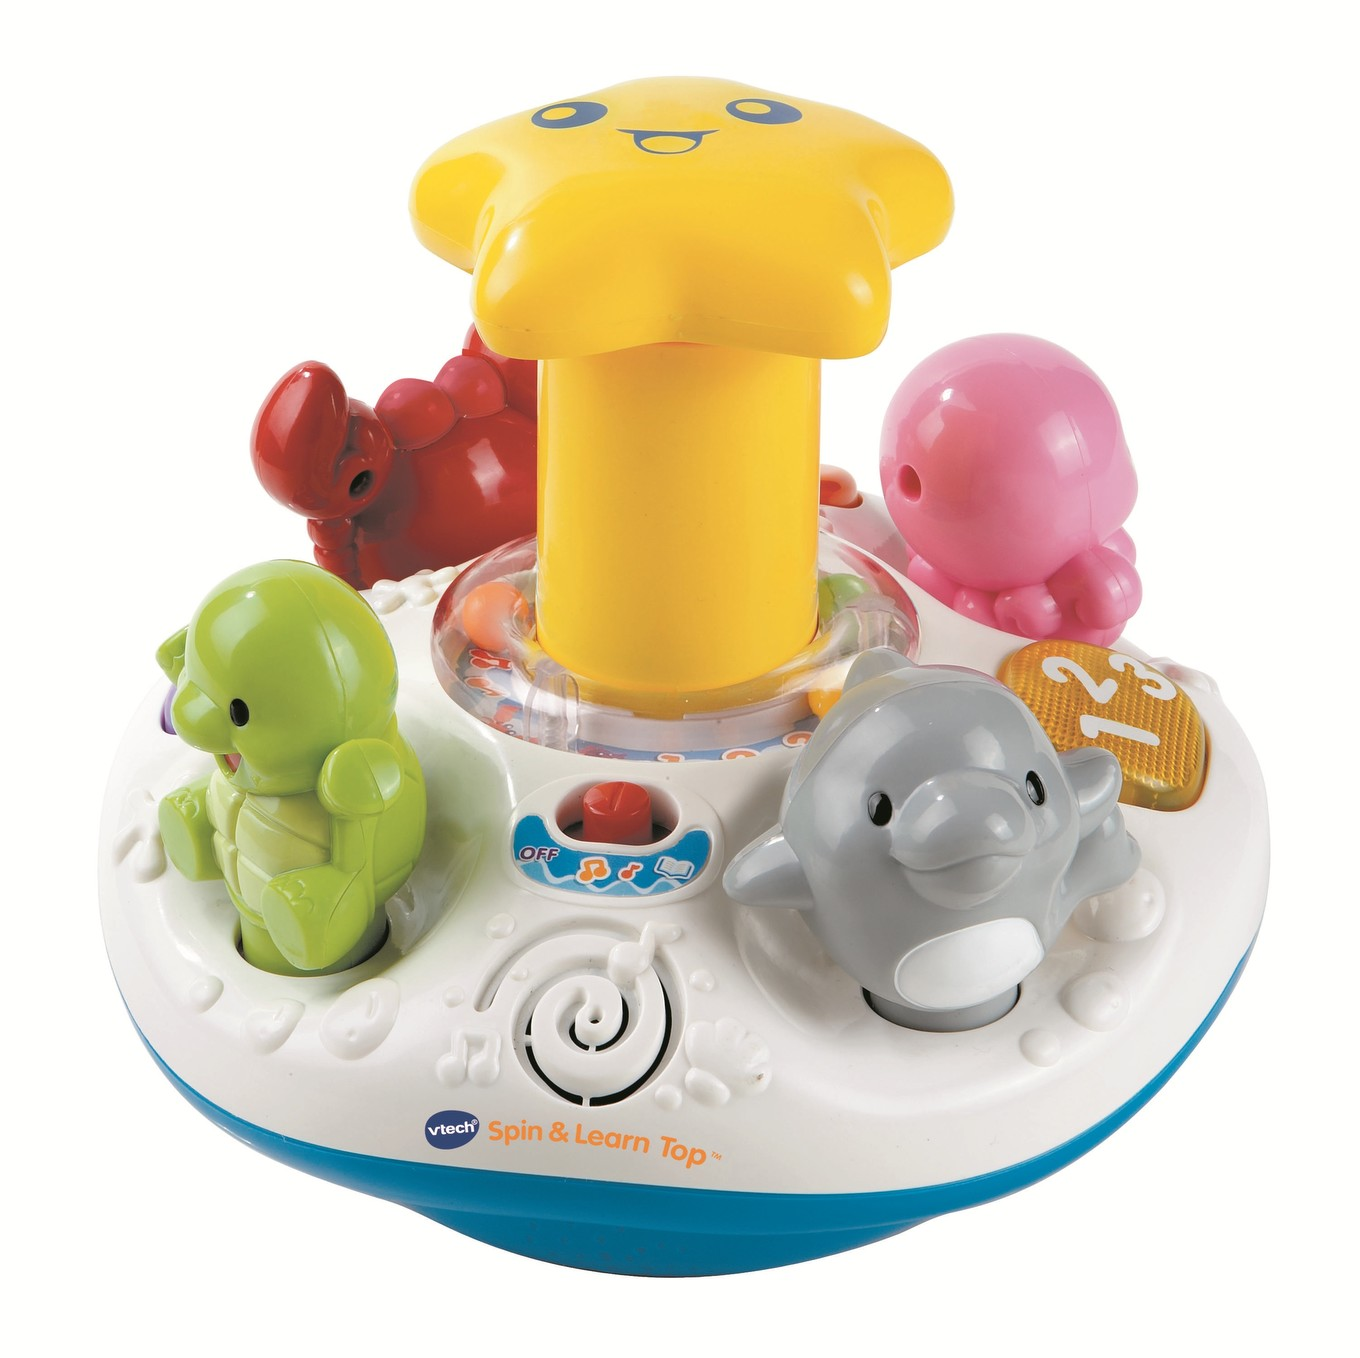 Best Educational Toys 2012 : Spin and learn top infant learning toy vtechkids